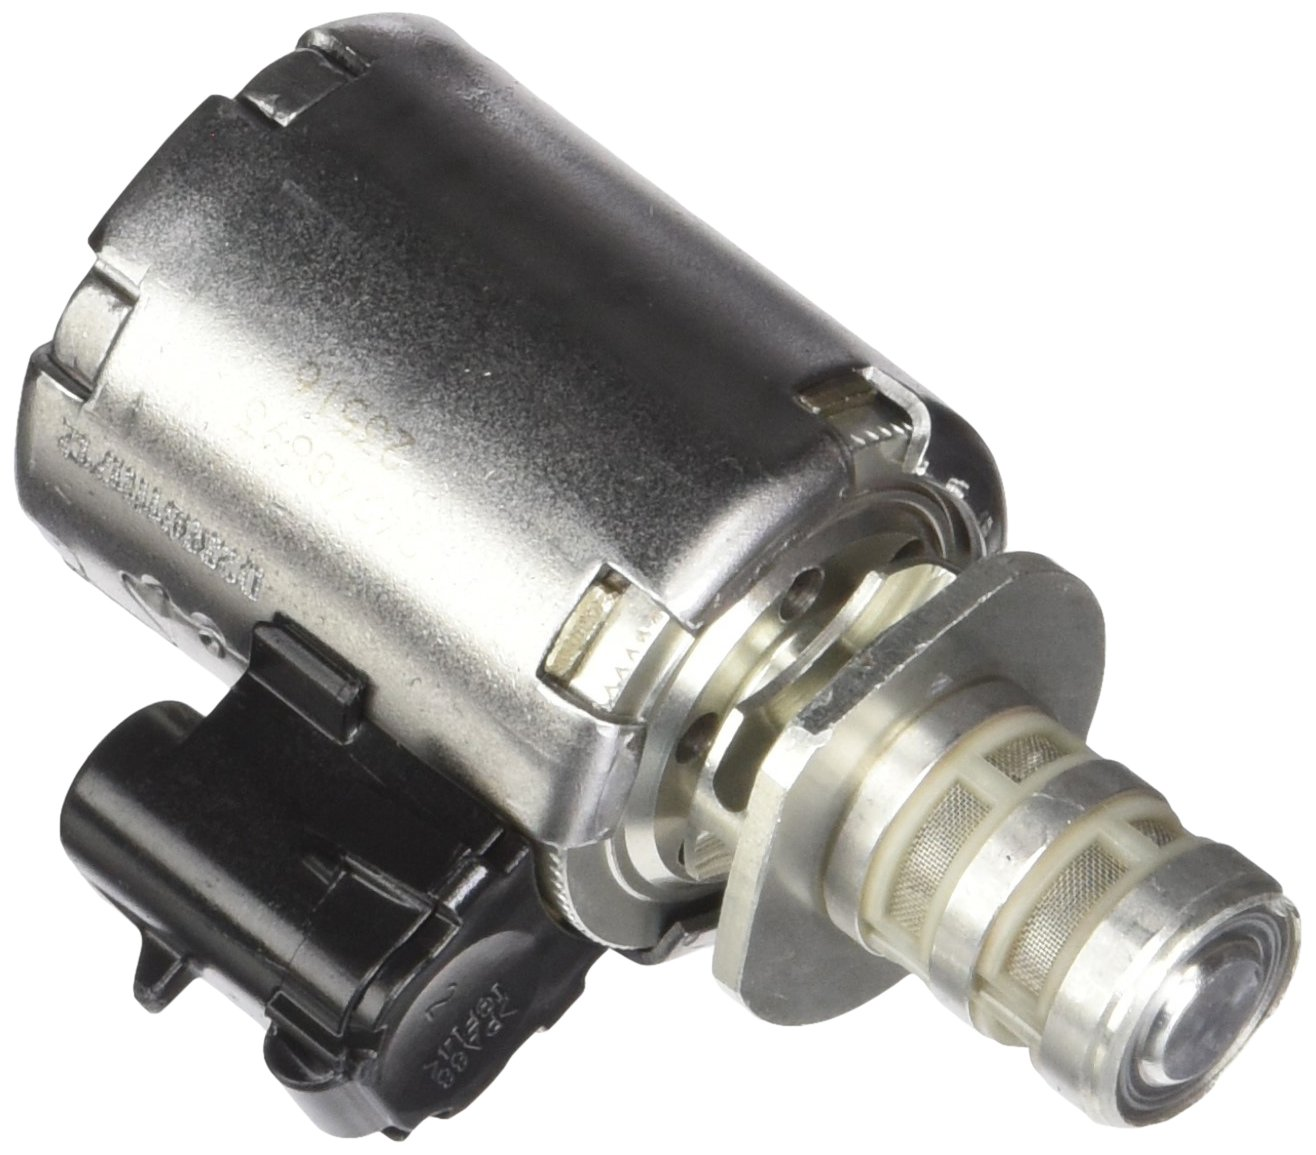 ACDelco 24248893 GM Original Equipment Automatic Transmission Pressure Control Solenoid Valve